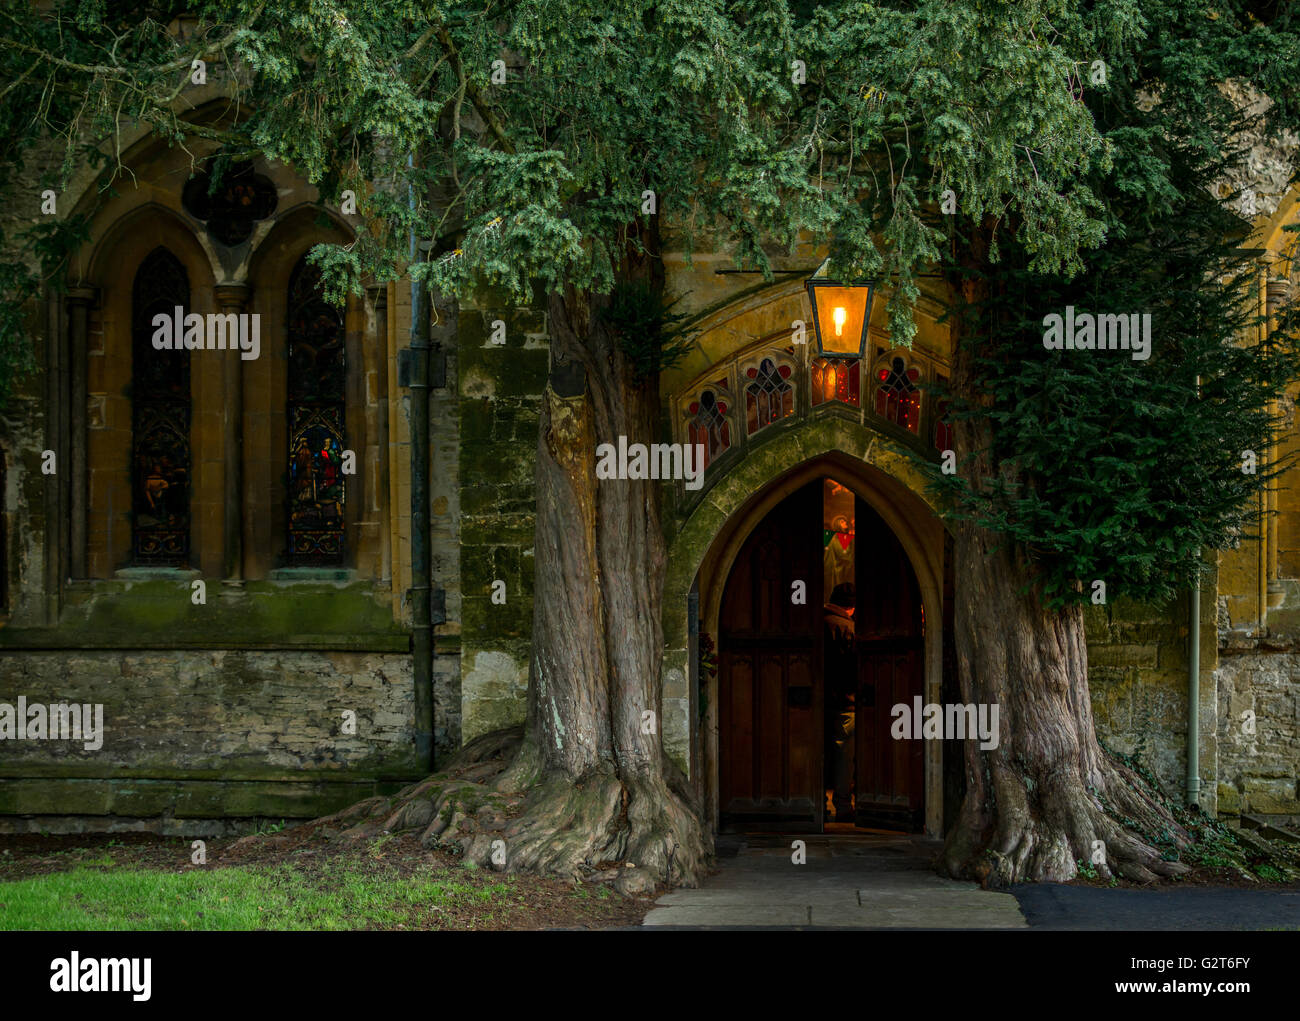 Doorway of St. Edward's Church, Stow-on the- Wold, Gloucestershire. - Stock Image